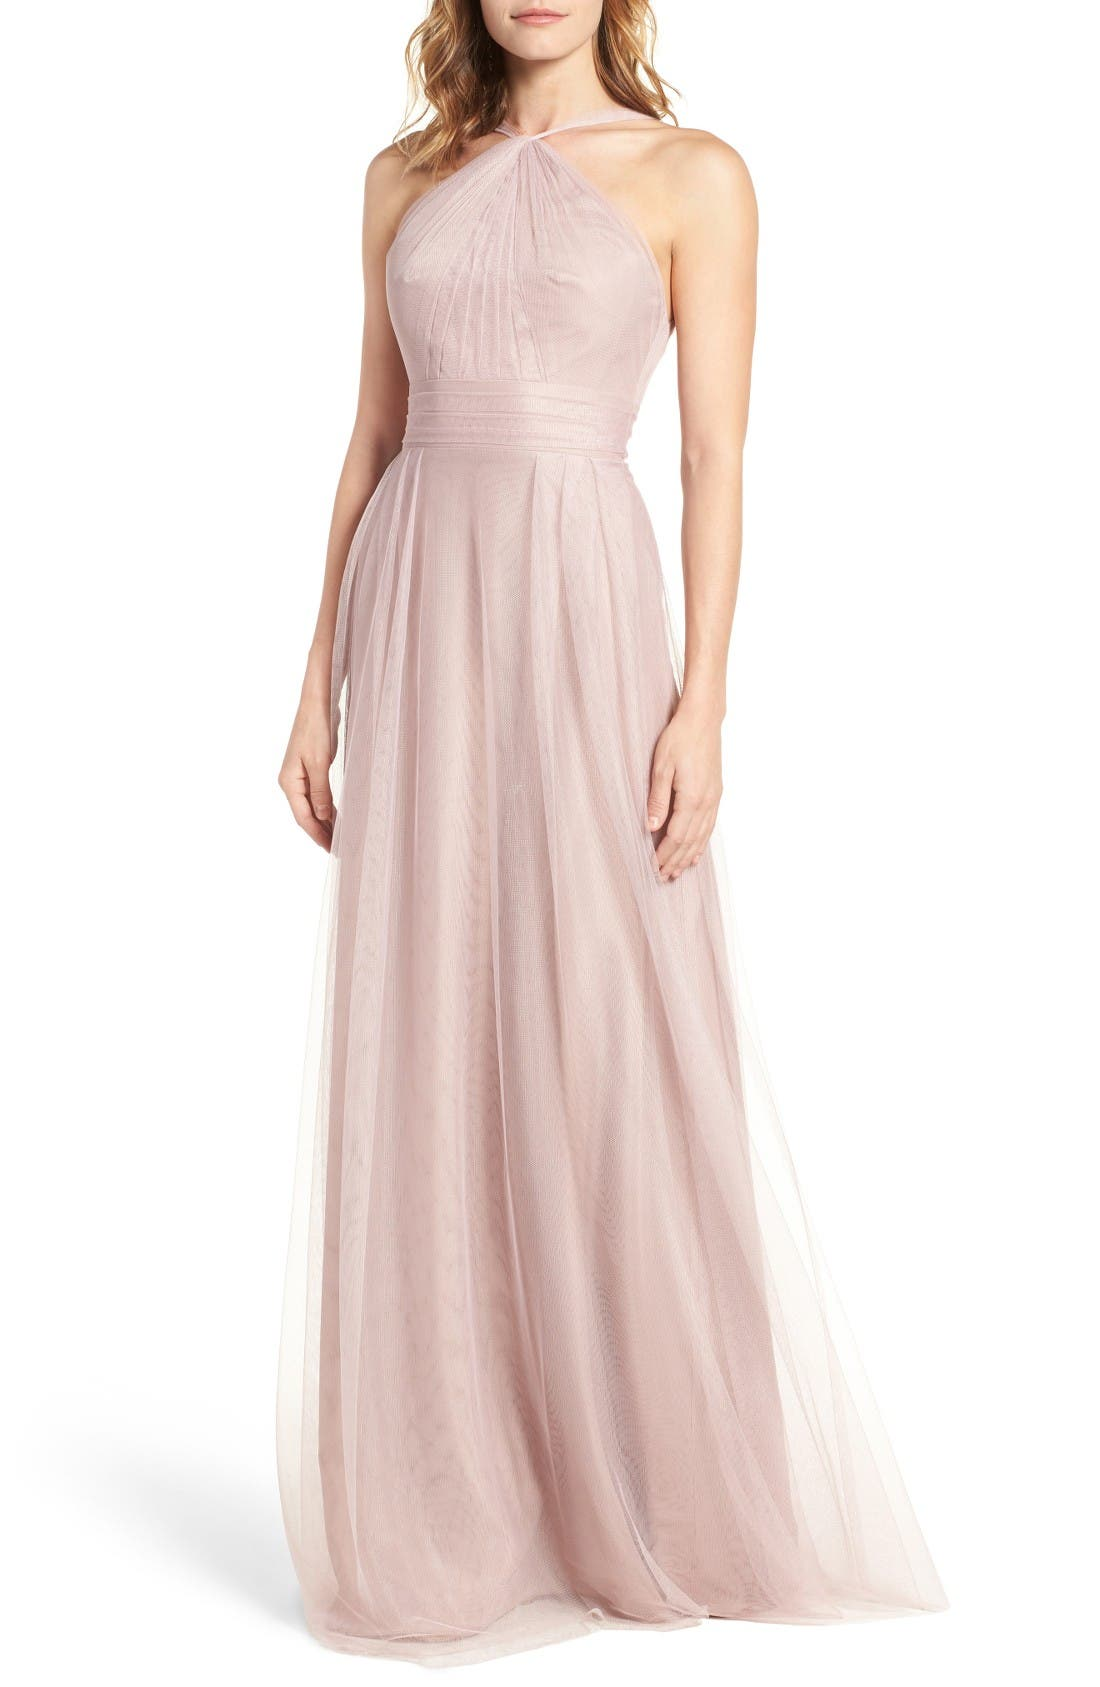 Alternate Image 1 Selected - Monique Lhuillier Bridesmaids Tulle Halter Style Gown